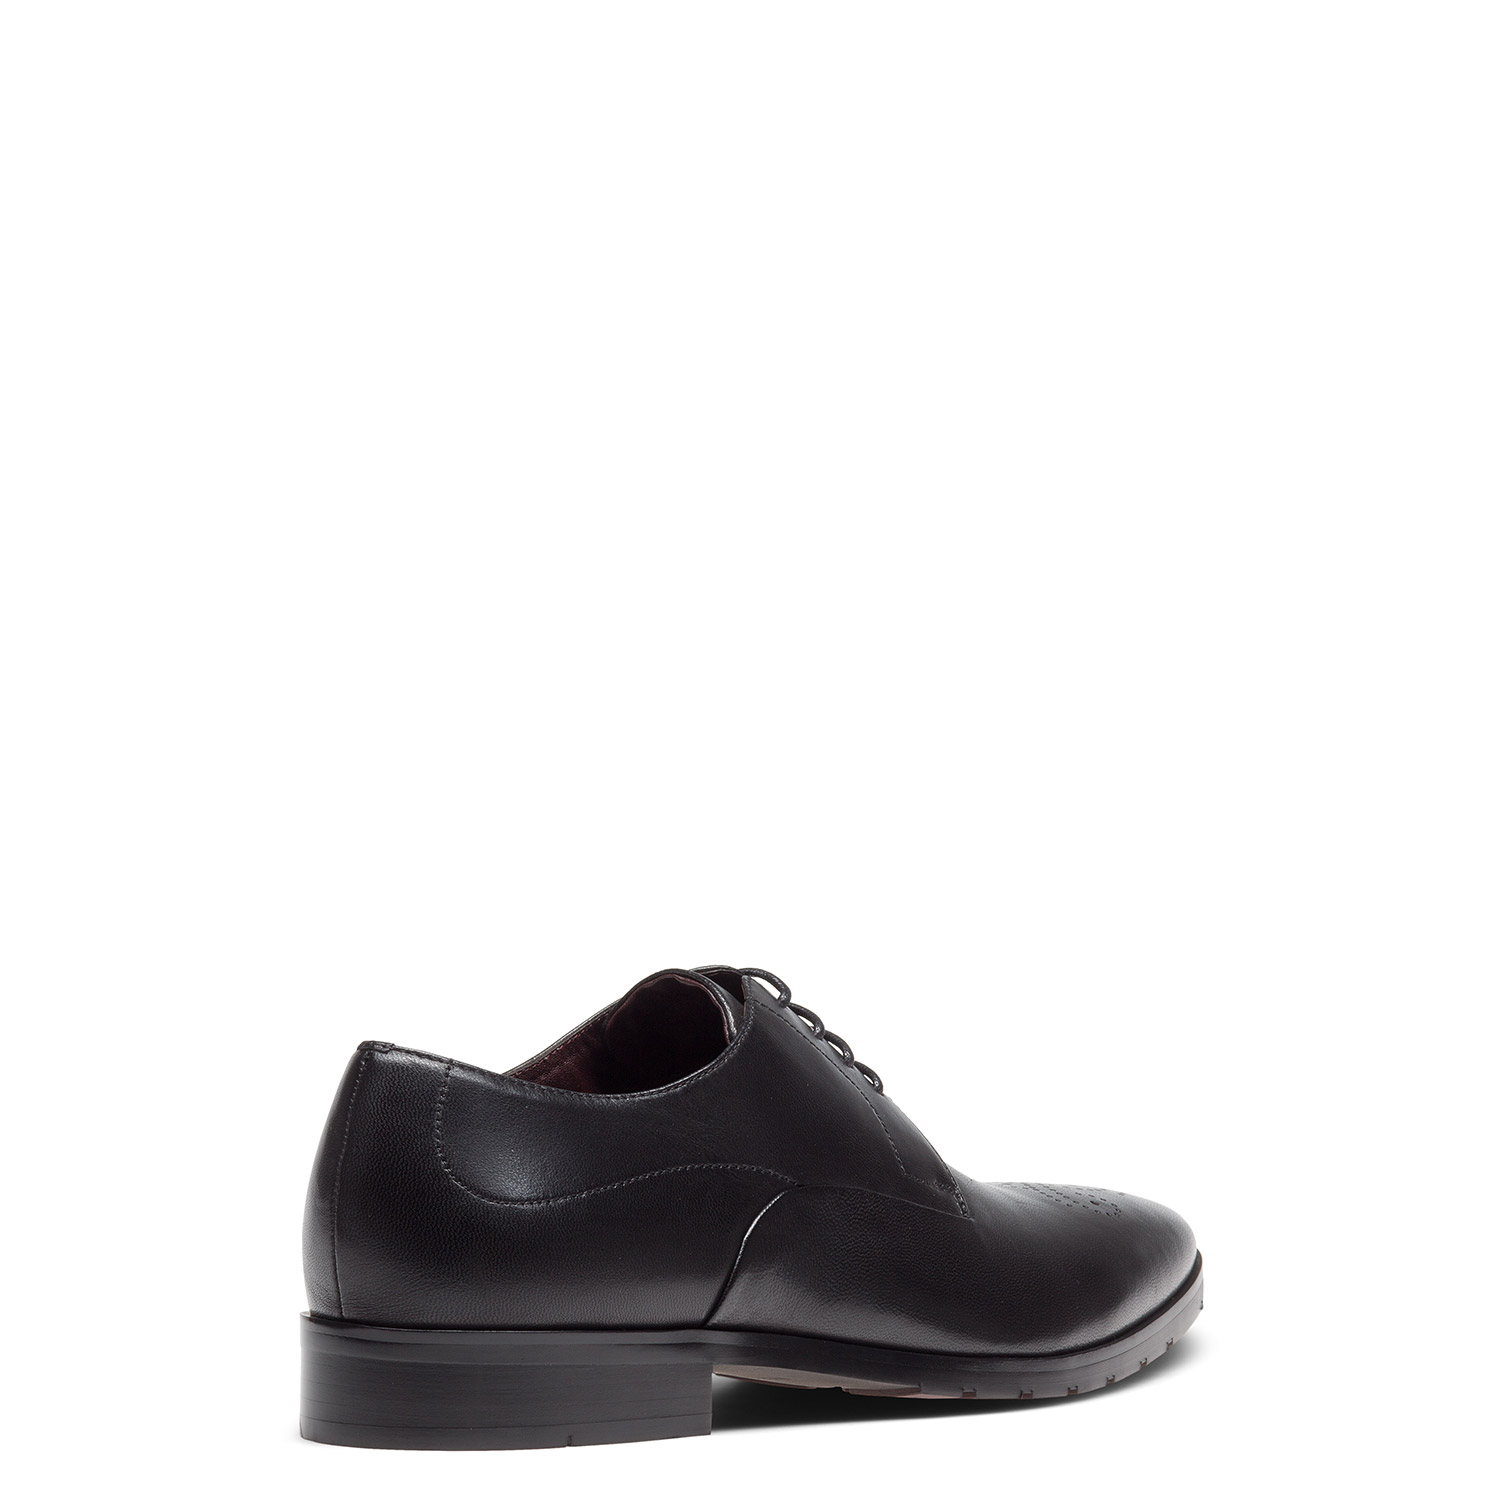 Men's shoes PAZOLINI WN-AVW1-1